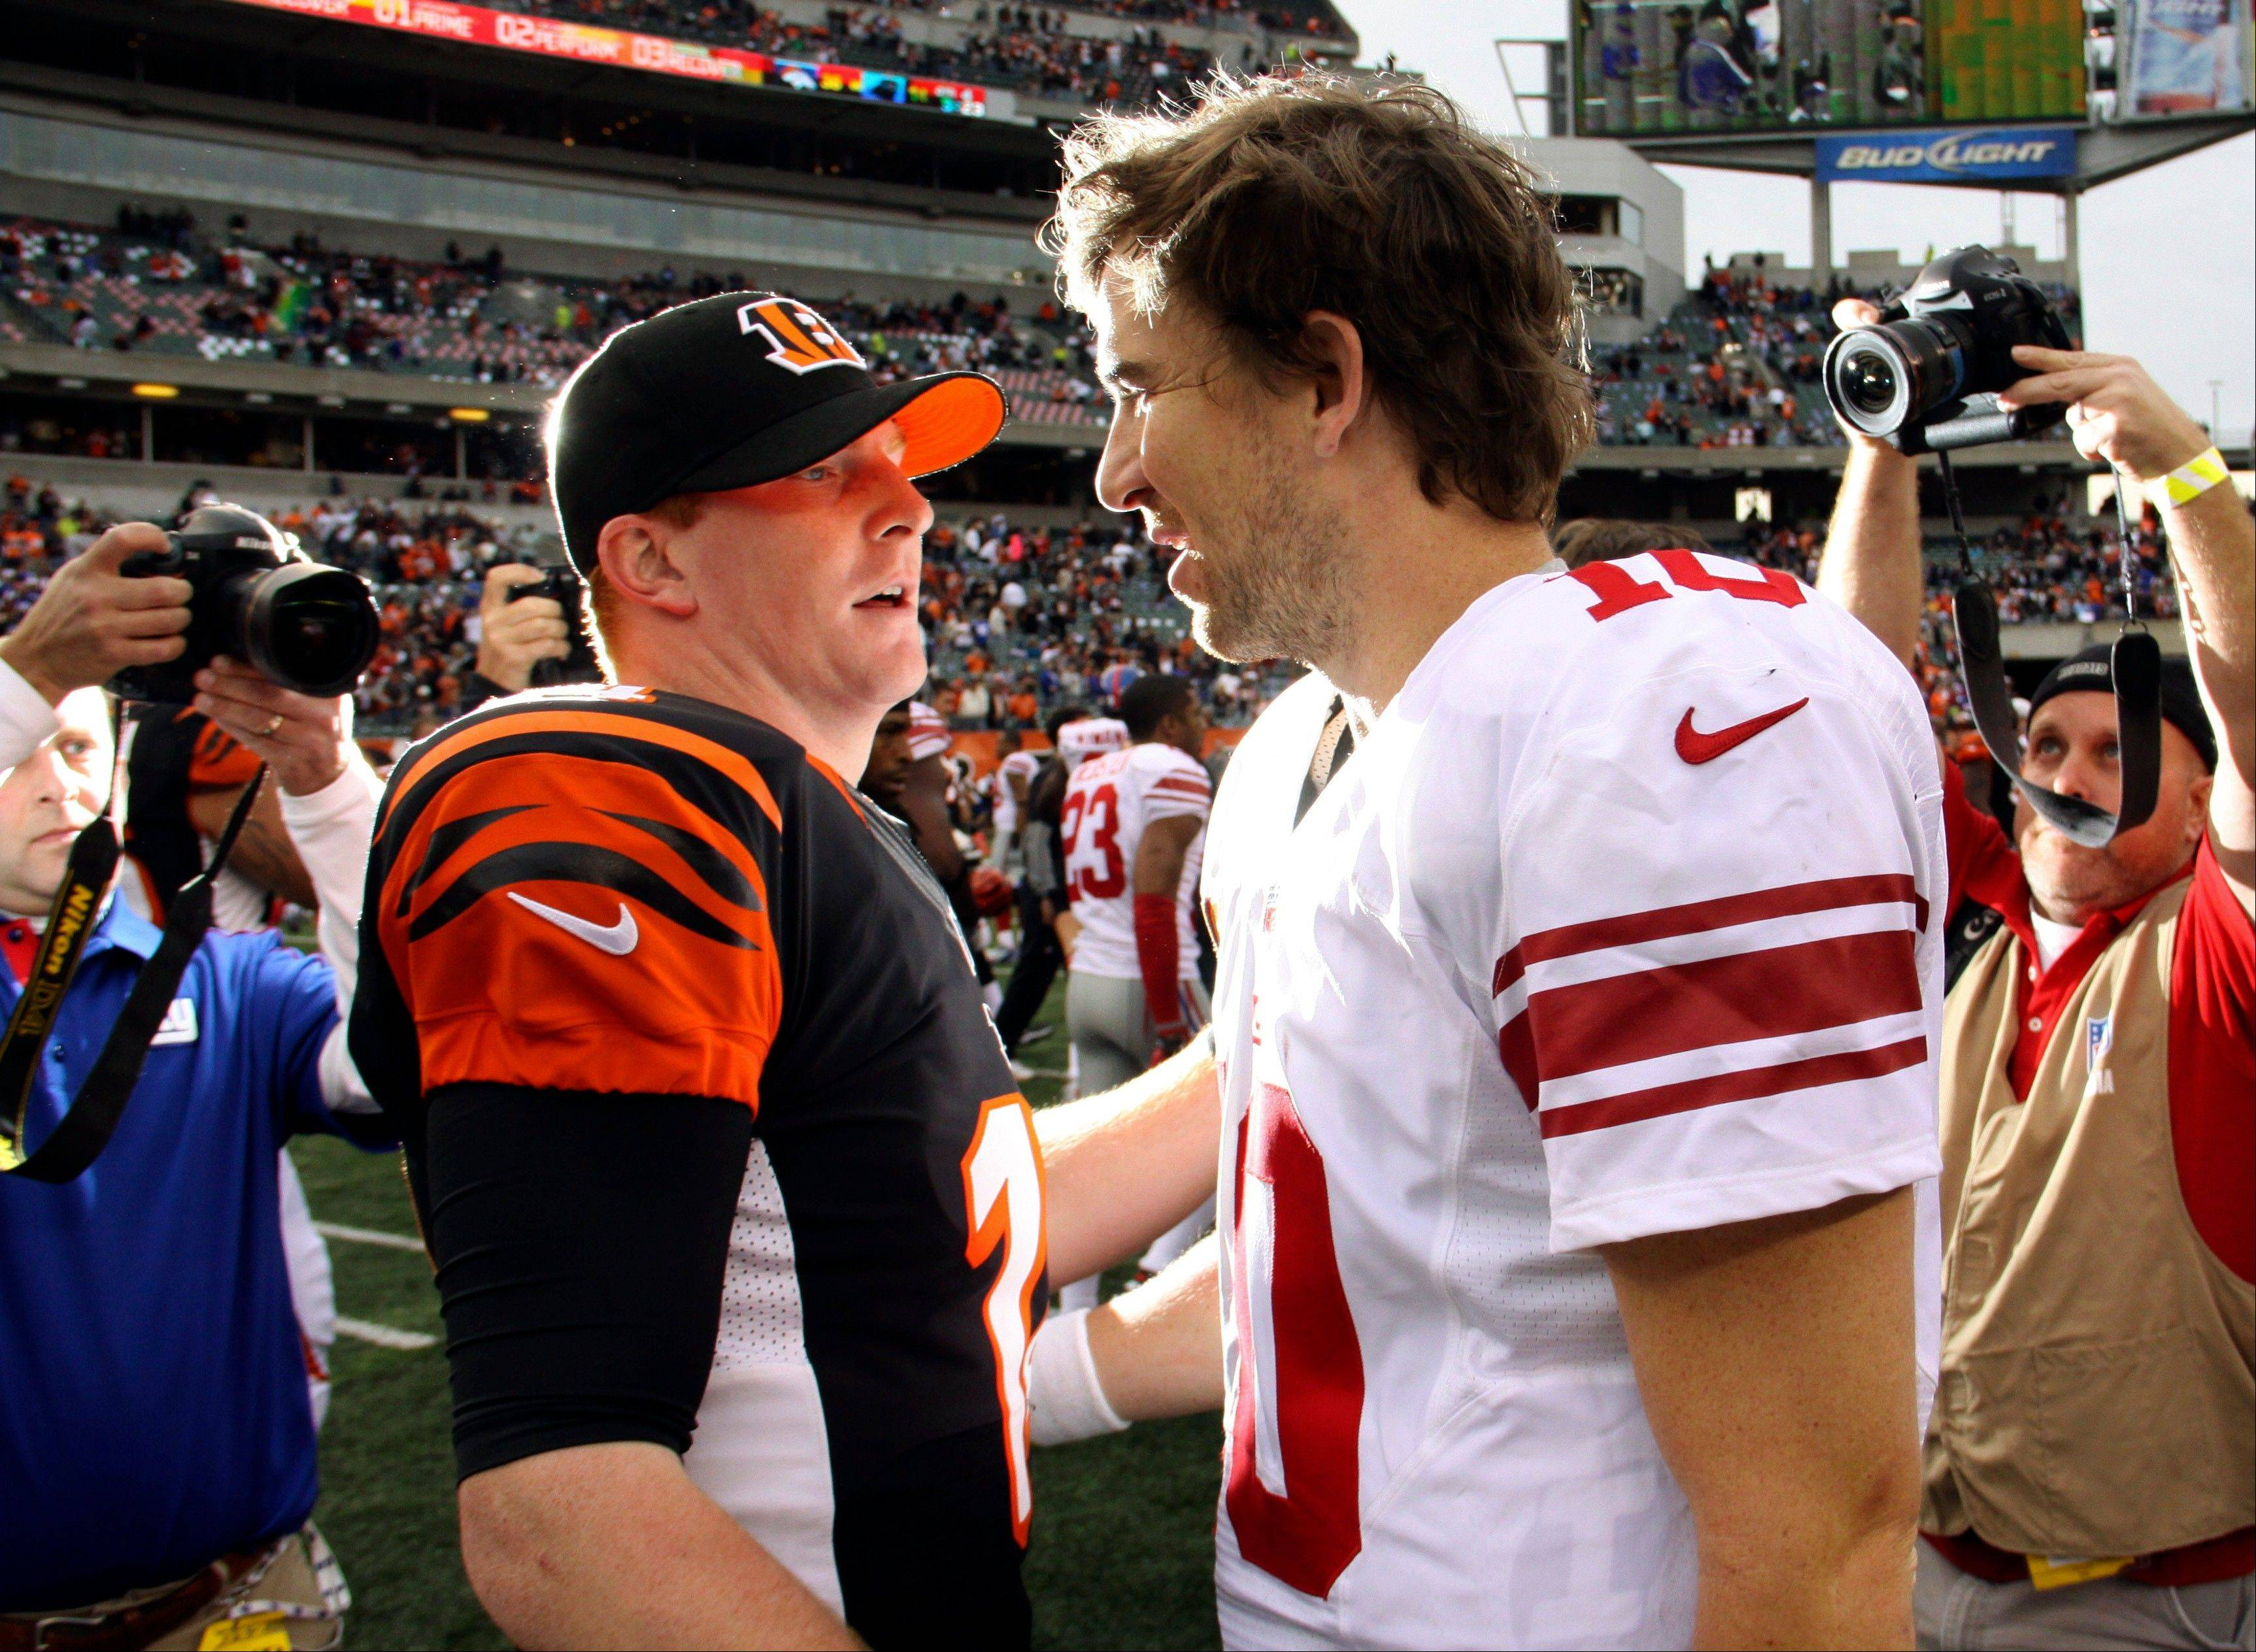 Cincinnati Bengals quarterback Andy Dalton (14) meets with New York Giants quarterback Eli Manning (10) after the Bengals� 31-13 win in an NFL football game, Sunday, Nov. 11, 2012, in Cincinnati.